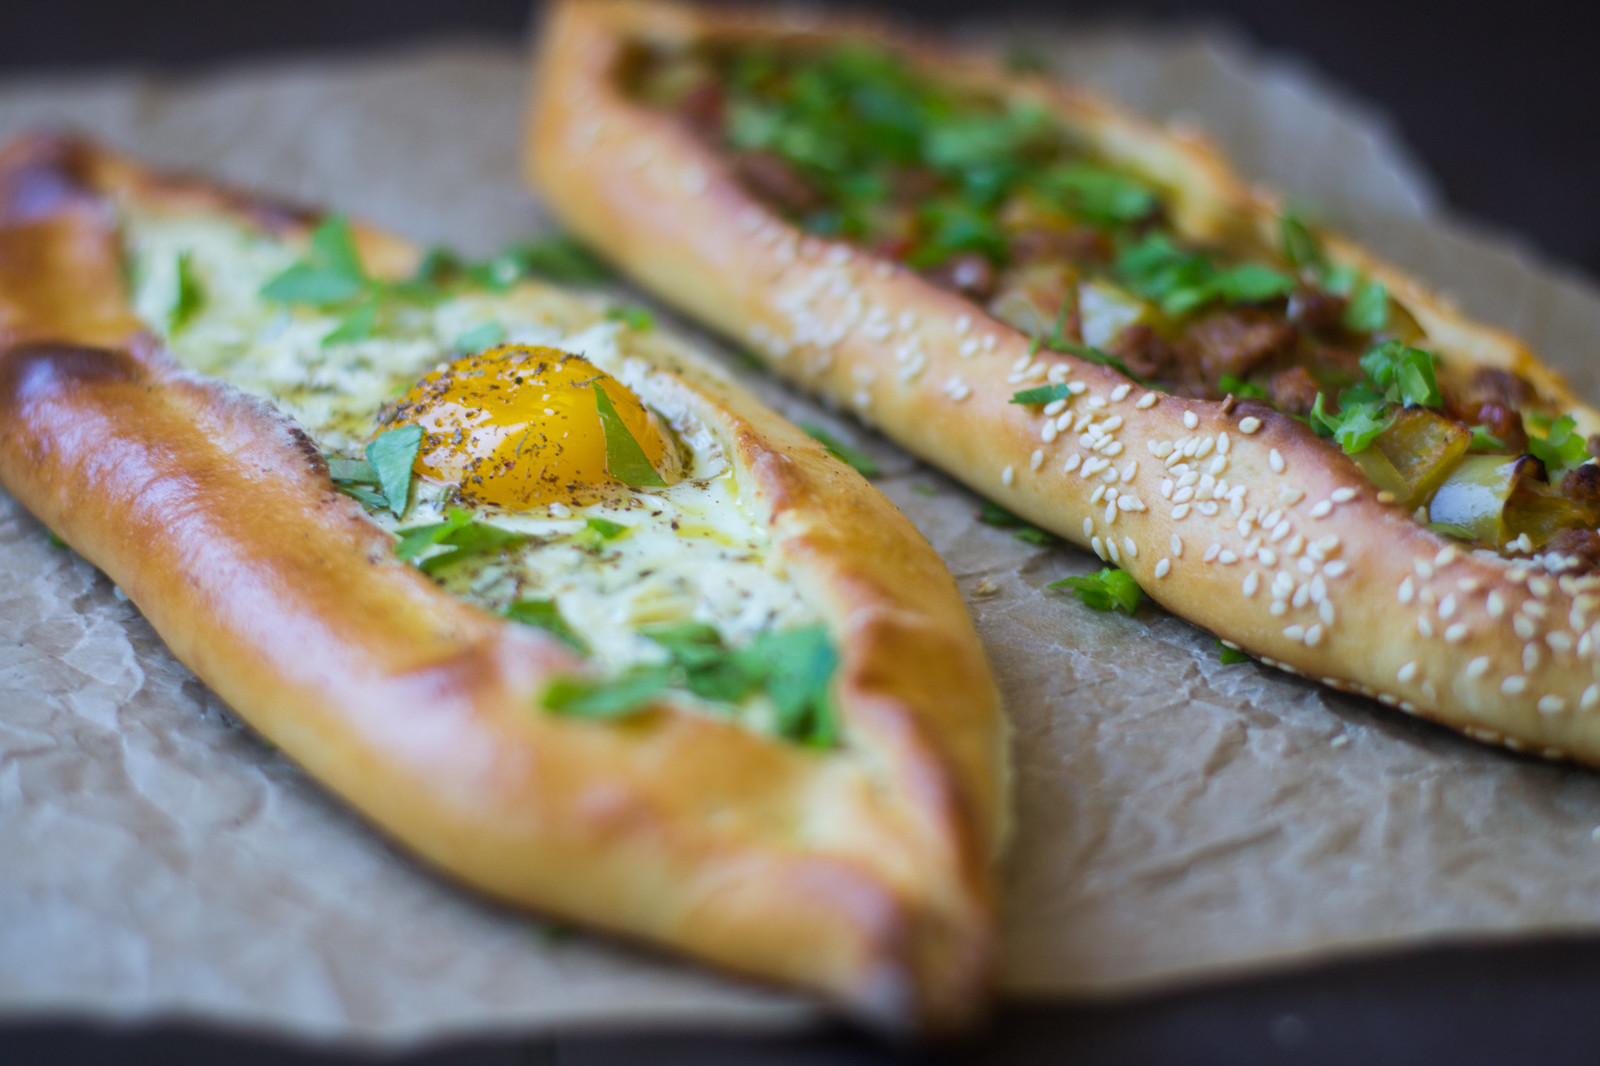 Turkish Pide (aka pizza) is a Turkish comfort food favorite! Here are 2 different fillings, one with meat and peppers and the other with cheese and egg.